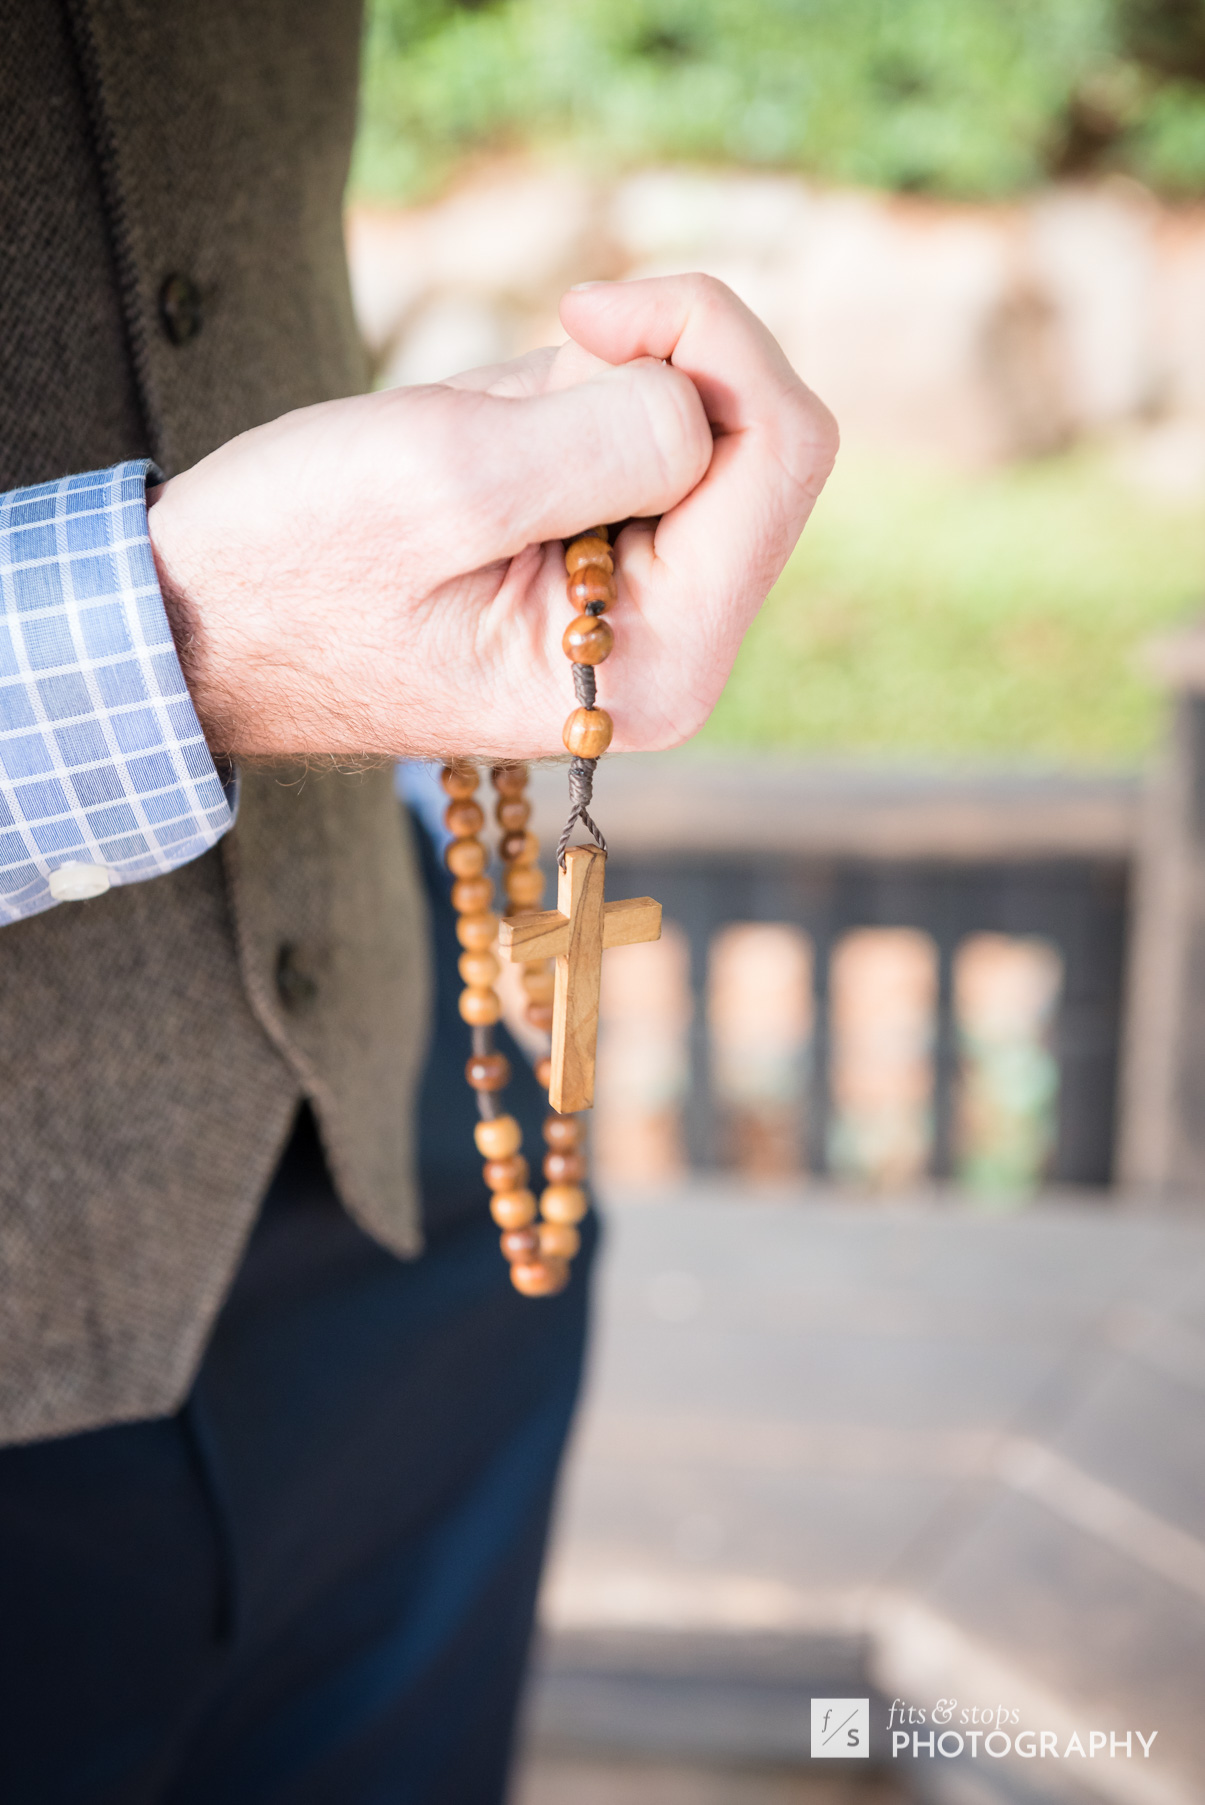 A young groom holds a keepsake wooden cross necklace in his hand